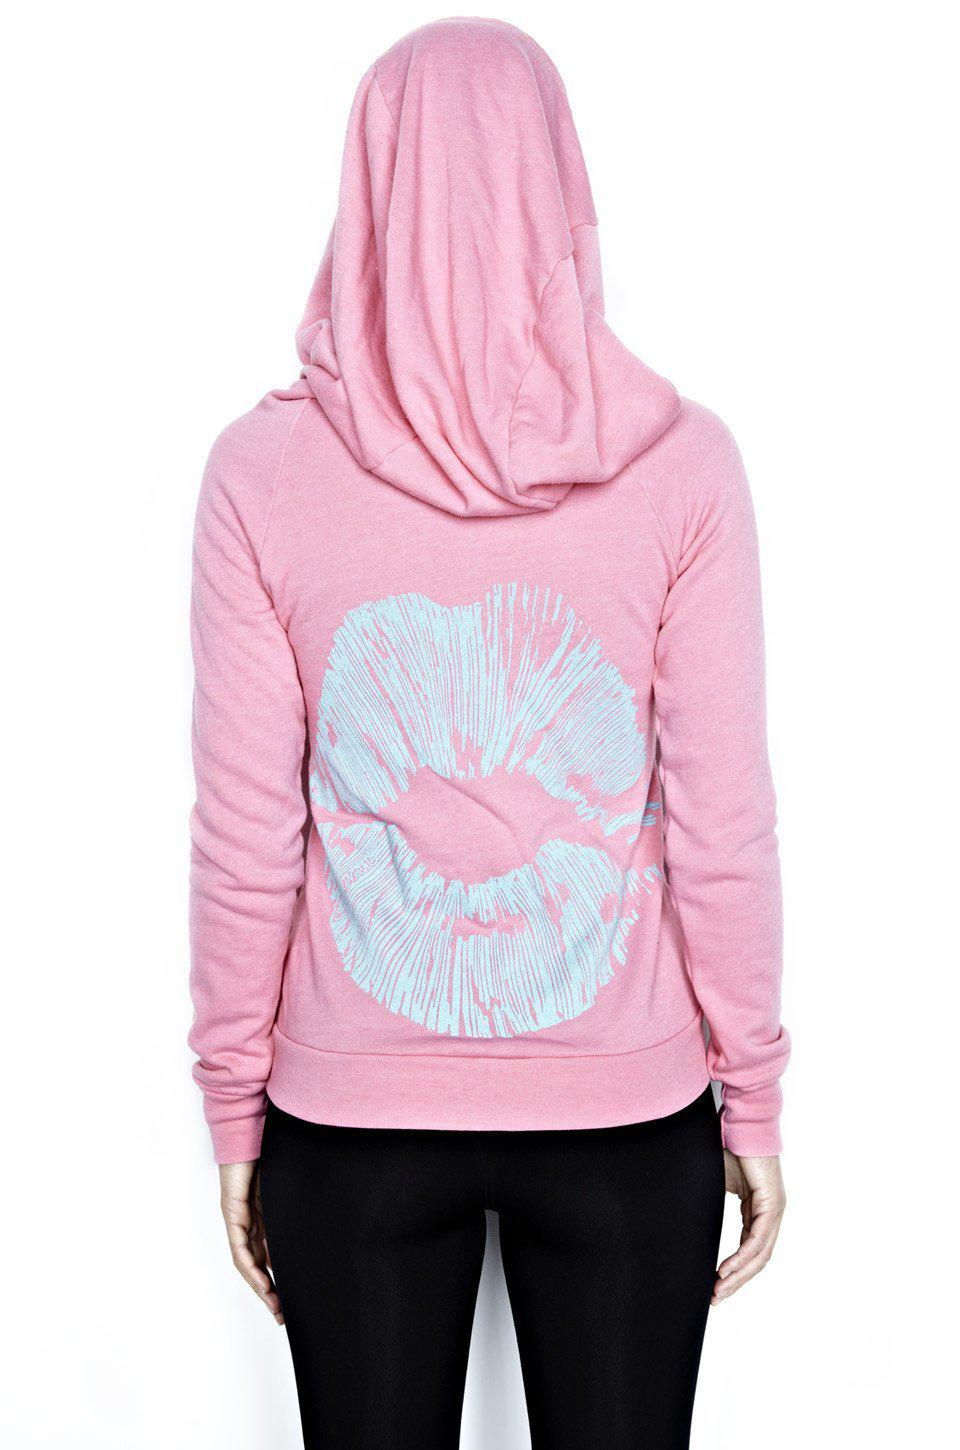 Lauren Moshi Candy Fitted Zip Up Hoodie Charm Bracelet